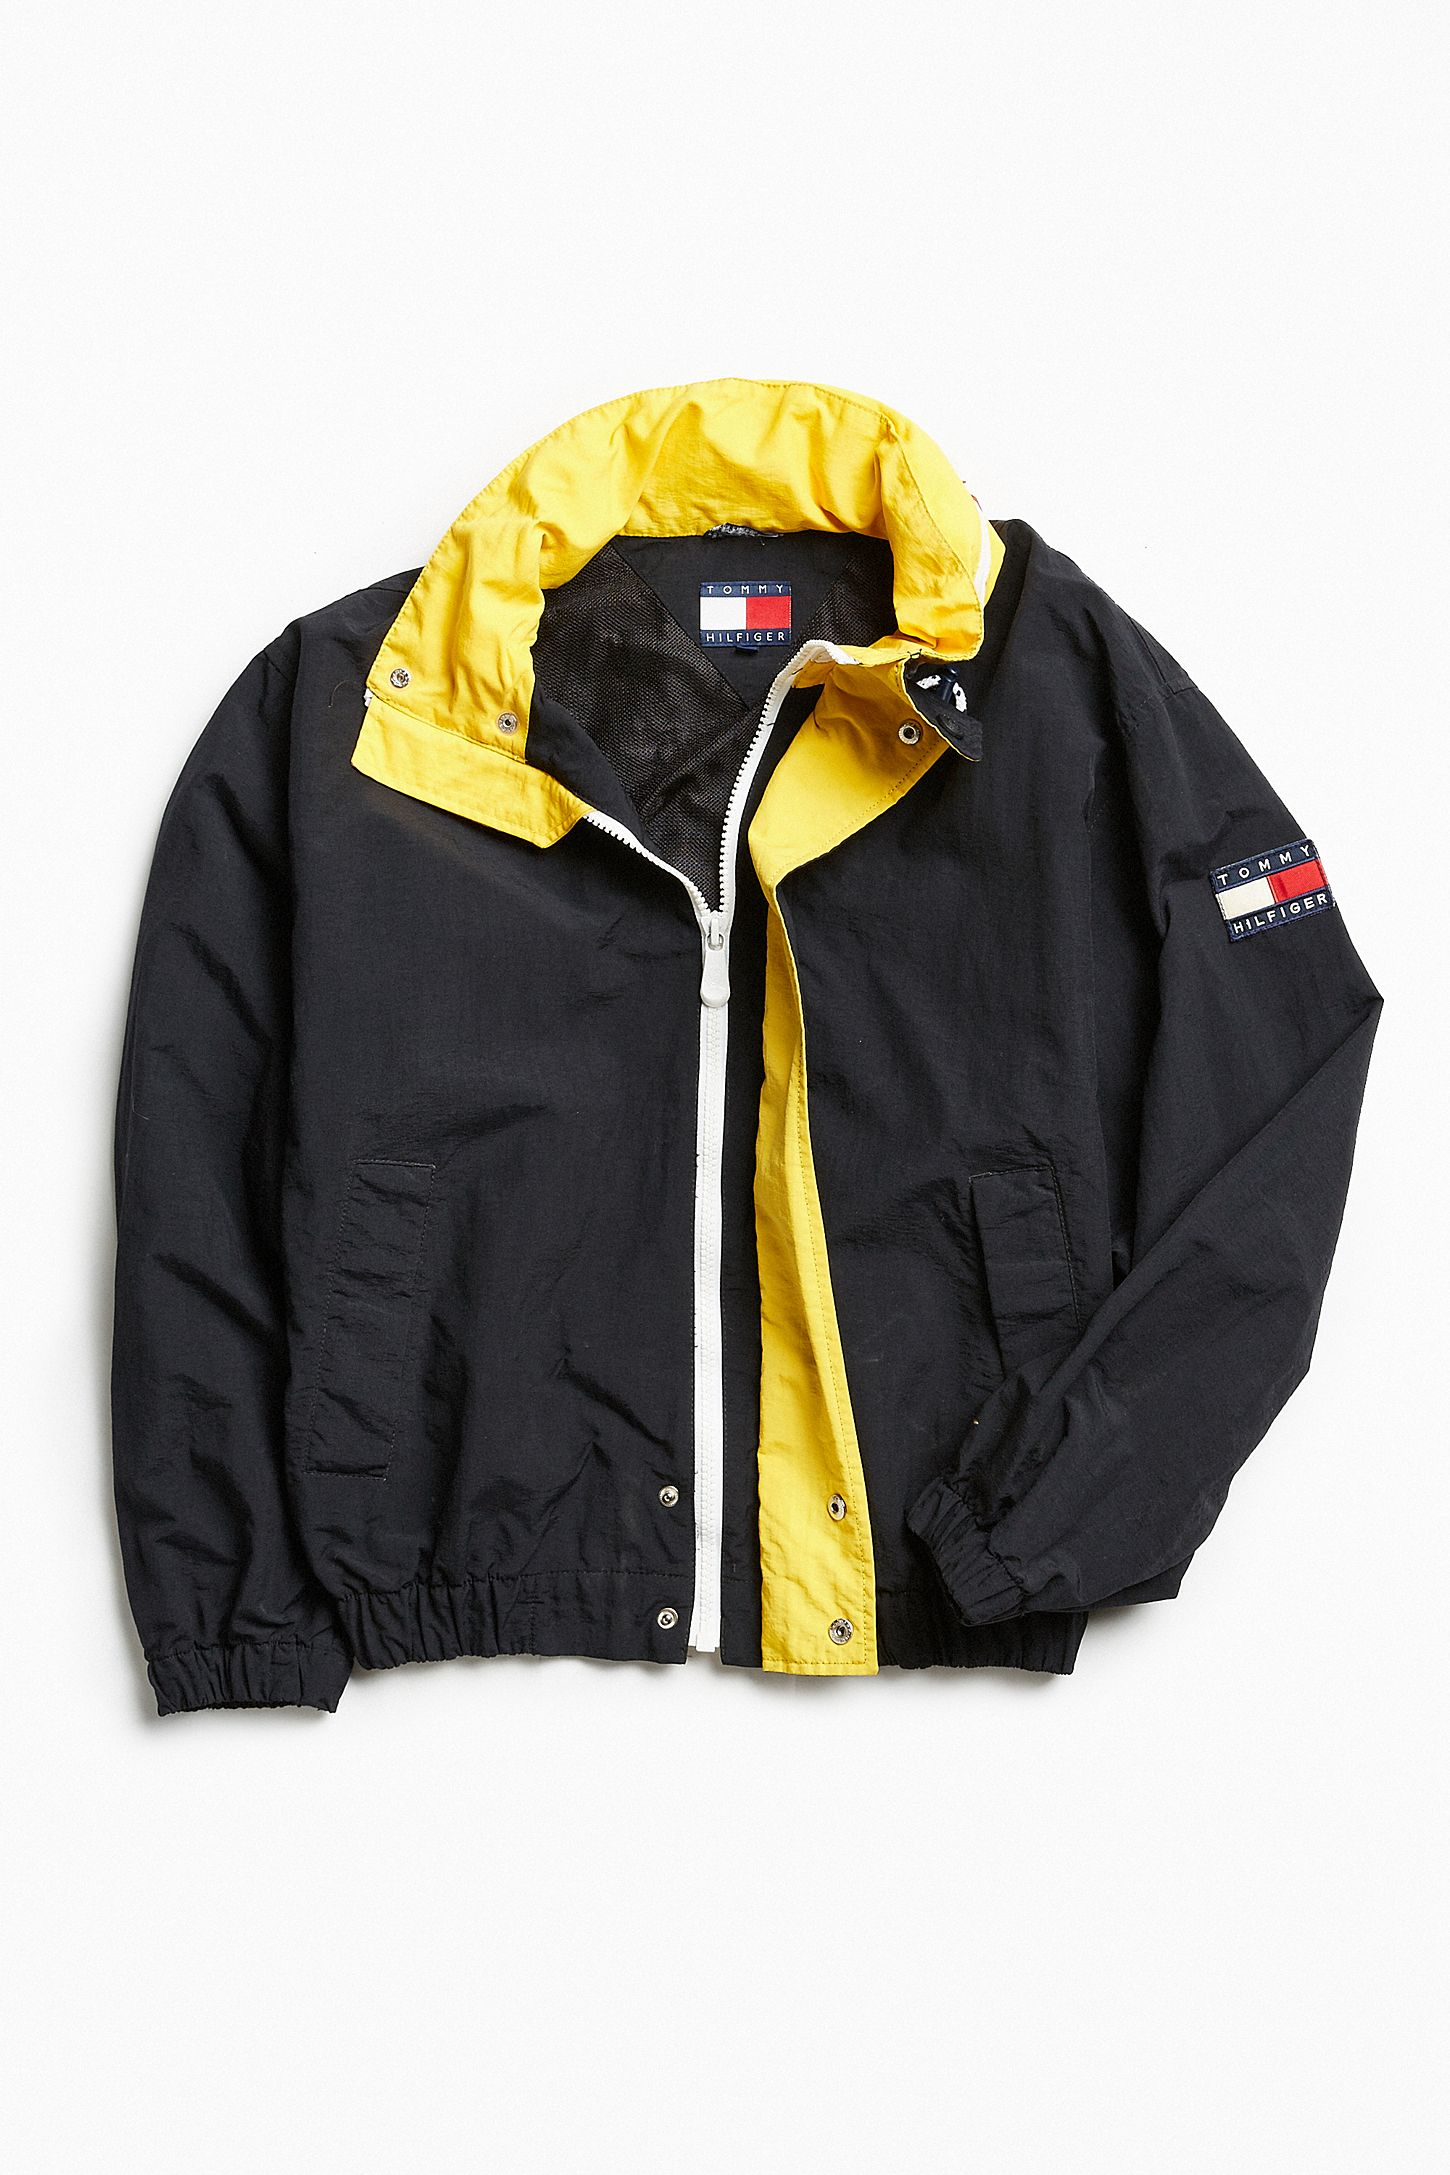 cd9b927c Vintage Tommy Hilfiger Black + Yellow '90s Prep Sport Windbreaker Jacket.  Tap image to zoom. Hover to zoom. Double Tap to Zoom